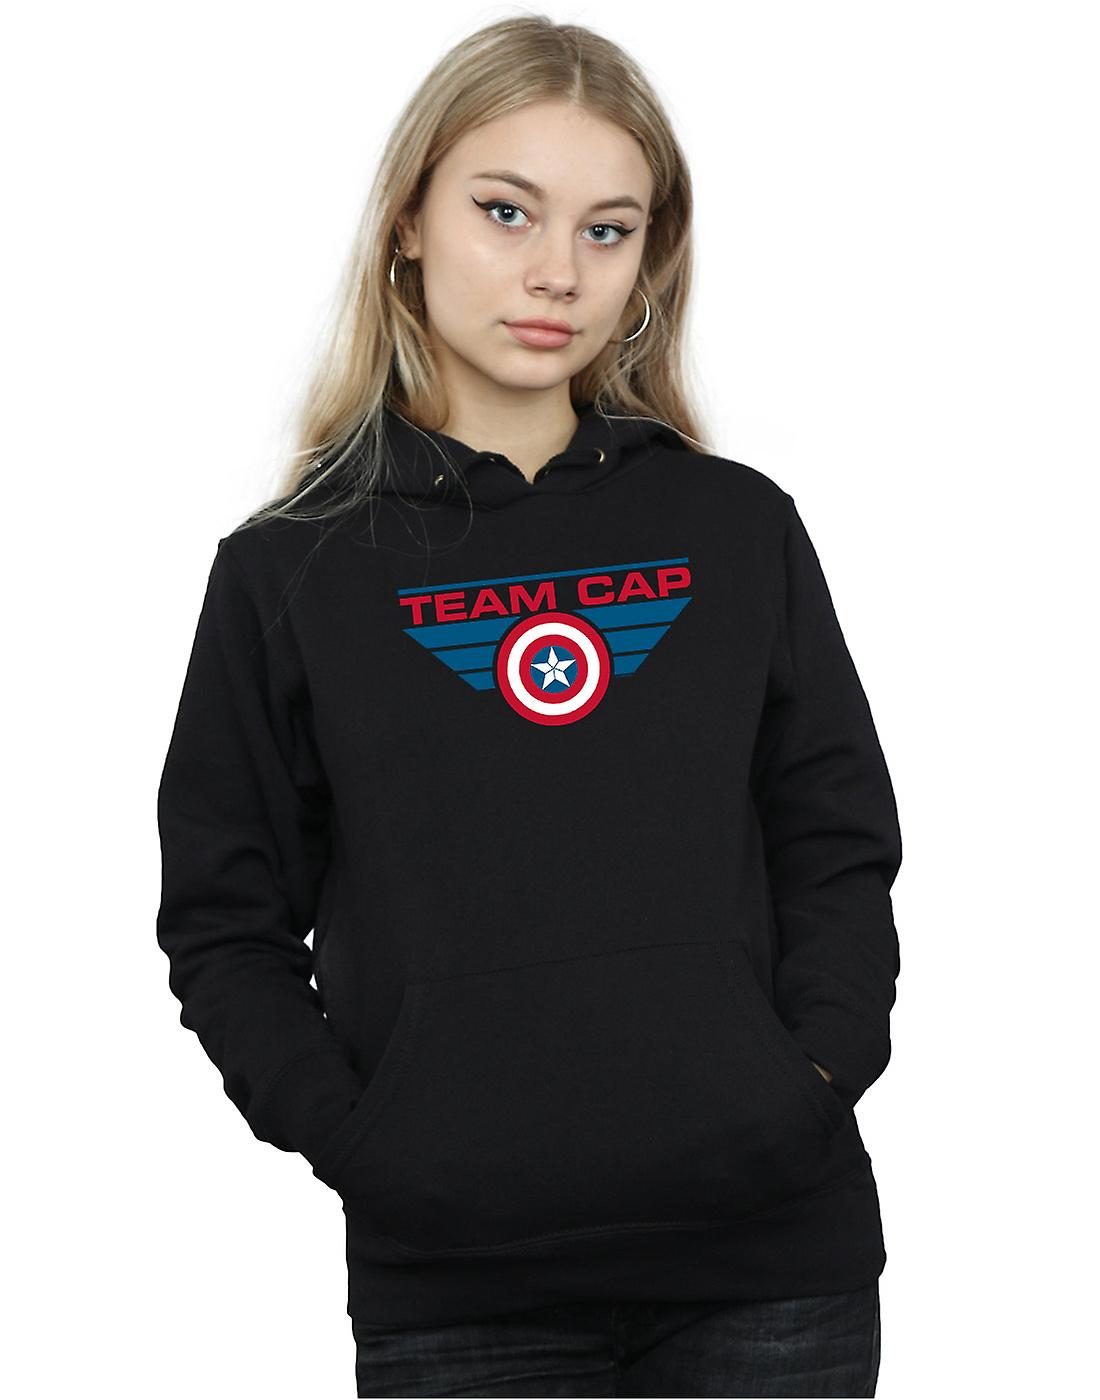 Marvel Women's Captain America Civil War Team Cap Hoodie